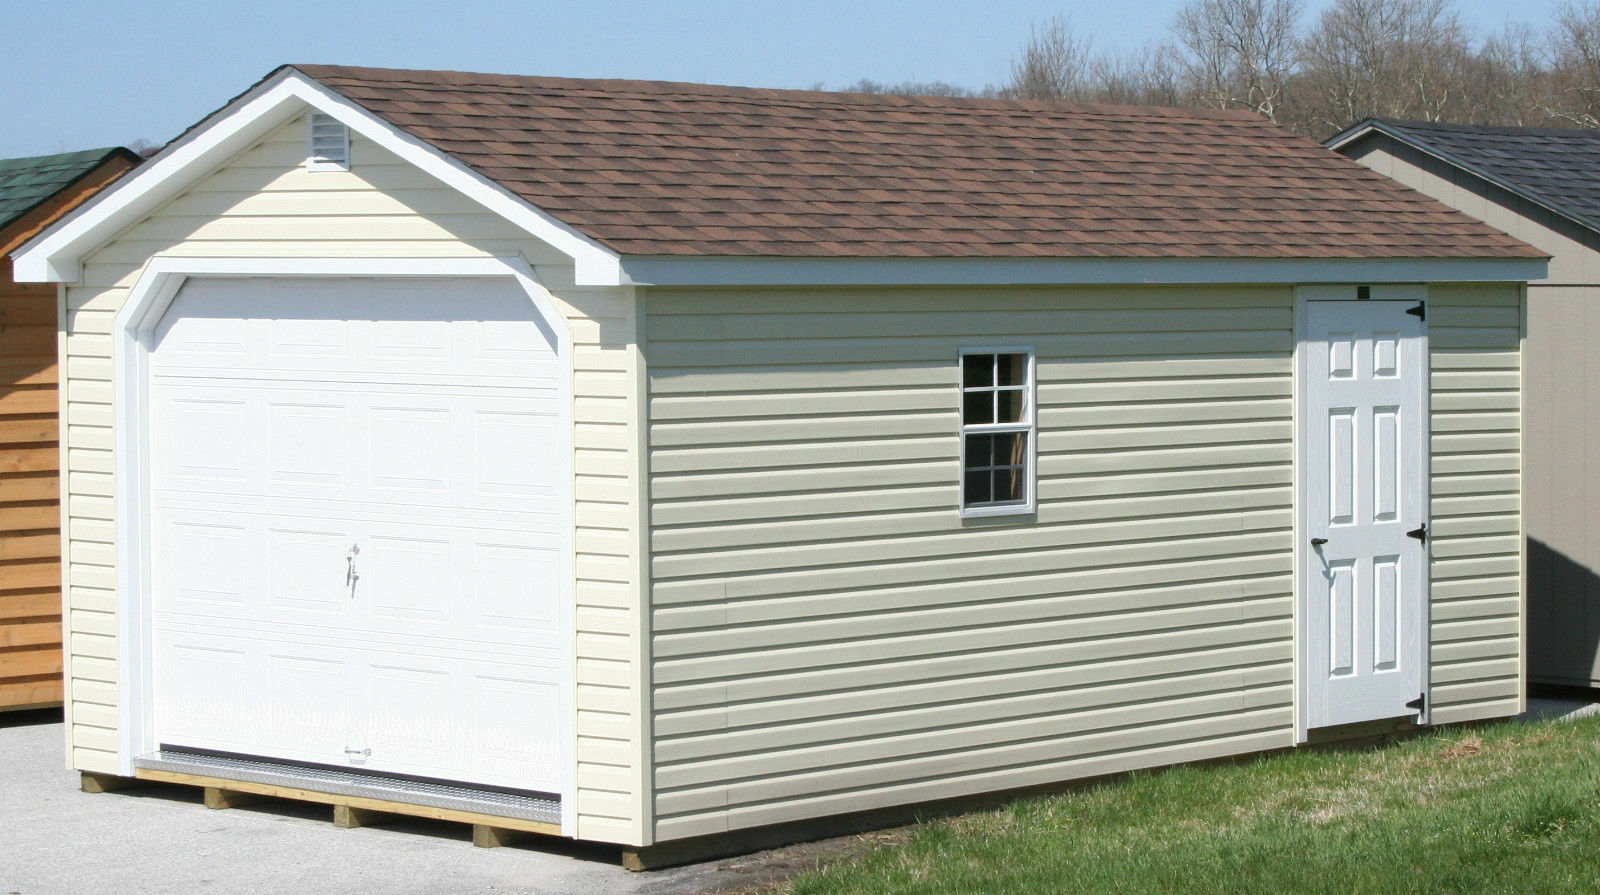 How to build a 12x20 shed ebay for Sheds storage buildings